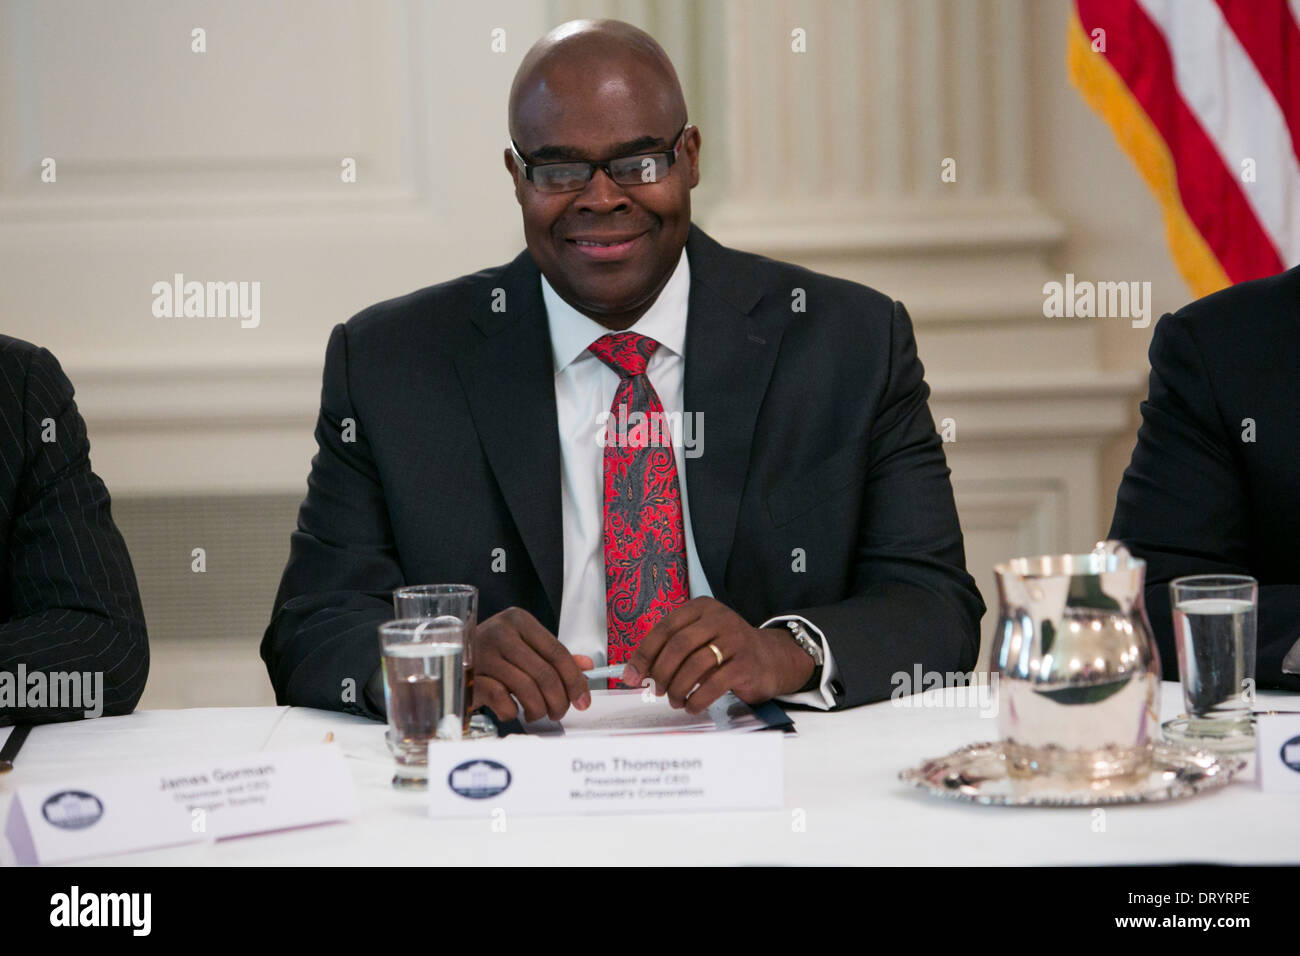 Don Thompson, President and CEO of McDonalds attends a meeting with other CEO's with President Barack Obama at the White House.  - Stock Image